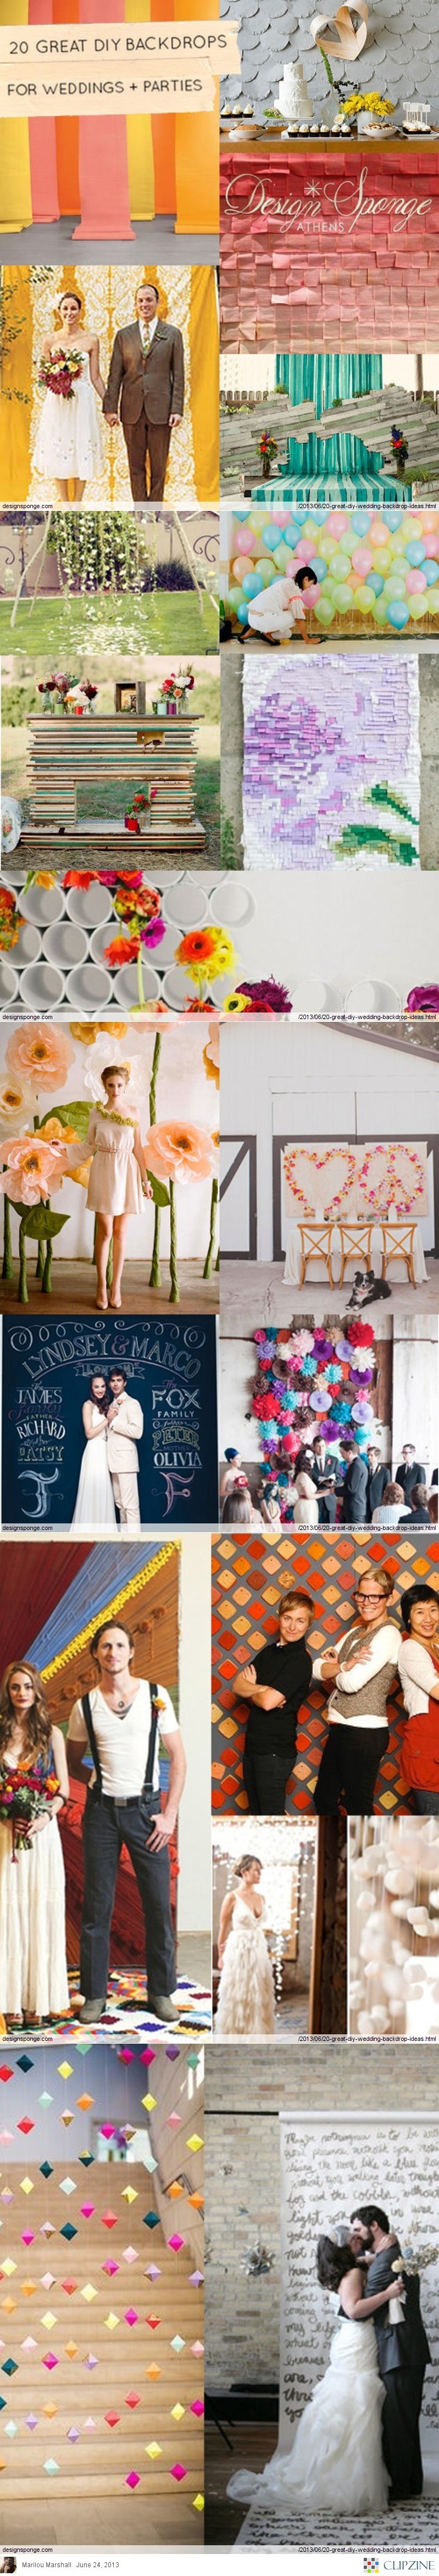 20 Great Diy Wedding Backdrop Ideas So I Ve Thought About Having